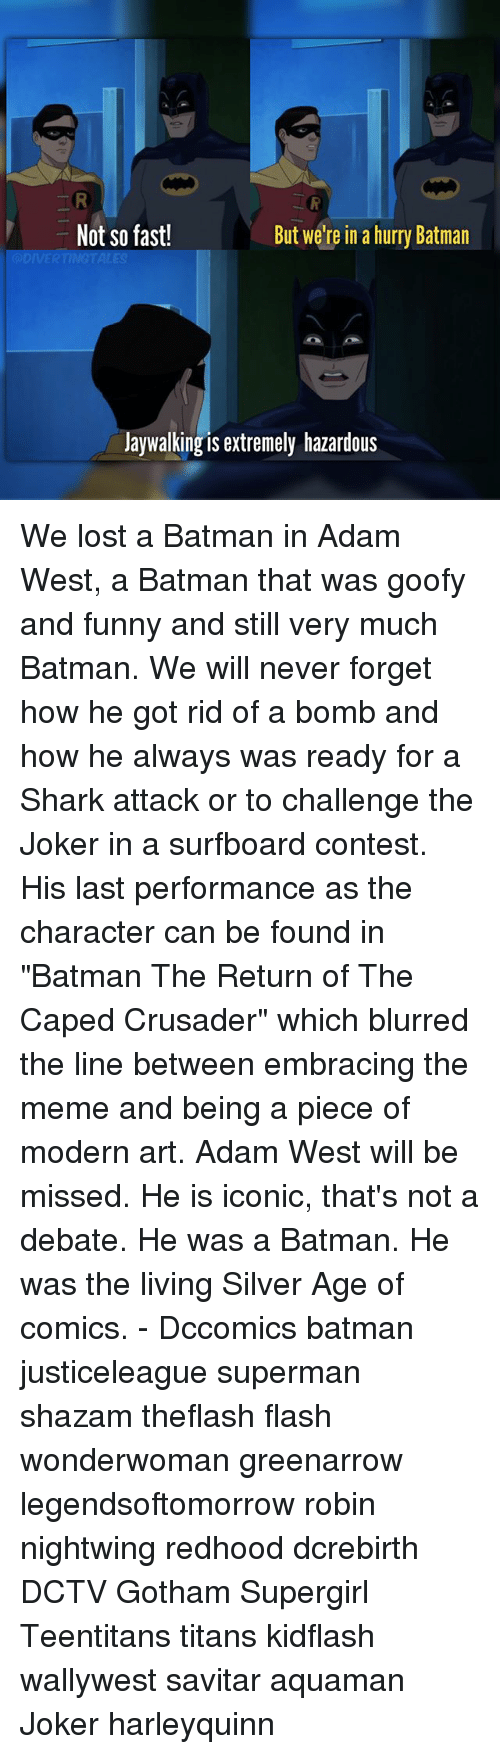 """Savitar: Not so fast!  But we're in a hurry Batman  Jaywalking is extremely hazardous We lost a Batman in Adam West, a Batman that was goofy and funny and still very much Batman. We will never forget how he got rid of a bomb and how he always was ready for a Shark attack or to challenge the Joker in a surfboard contest. His last performance as the character can be found in """"Batman The Return of The Caped Crusader"""" which blurred the line between embracing the meme and being a piece of modern art. Adam West will be missed. He is iconic, that's not a debate. He was a Batman. He was the living Silver Age of comics. - Dccomics batman justiceleague superman shazam theflash flash wonderwoman greenarrow legendsoftomorrow robin nightwing redhood dcrebirth DCTV Gotham Supergirl Teentitans titans kidflash wallywest savitar aquaman Joker harleyquinn"""